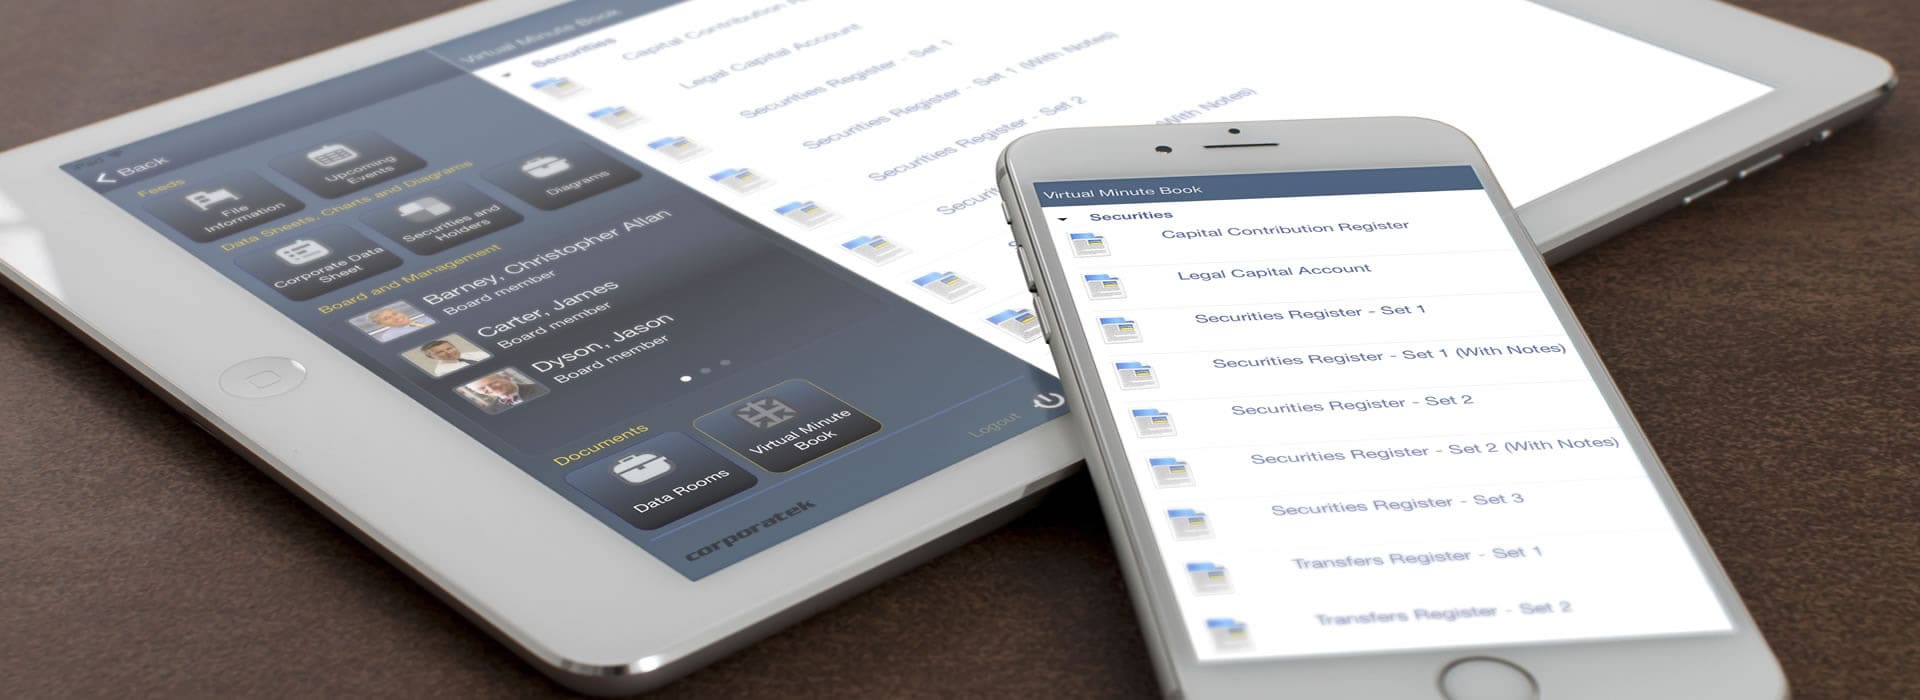 GlobalAct Mobile - Mobile App for Attorneys in Large Law Firms | Corporatek